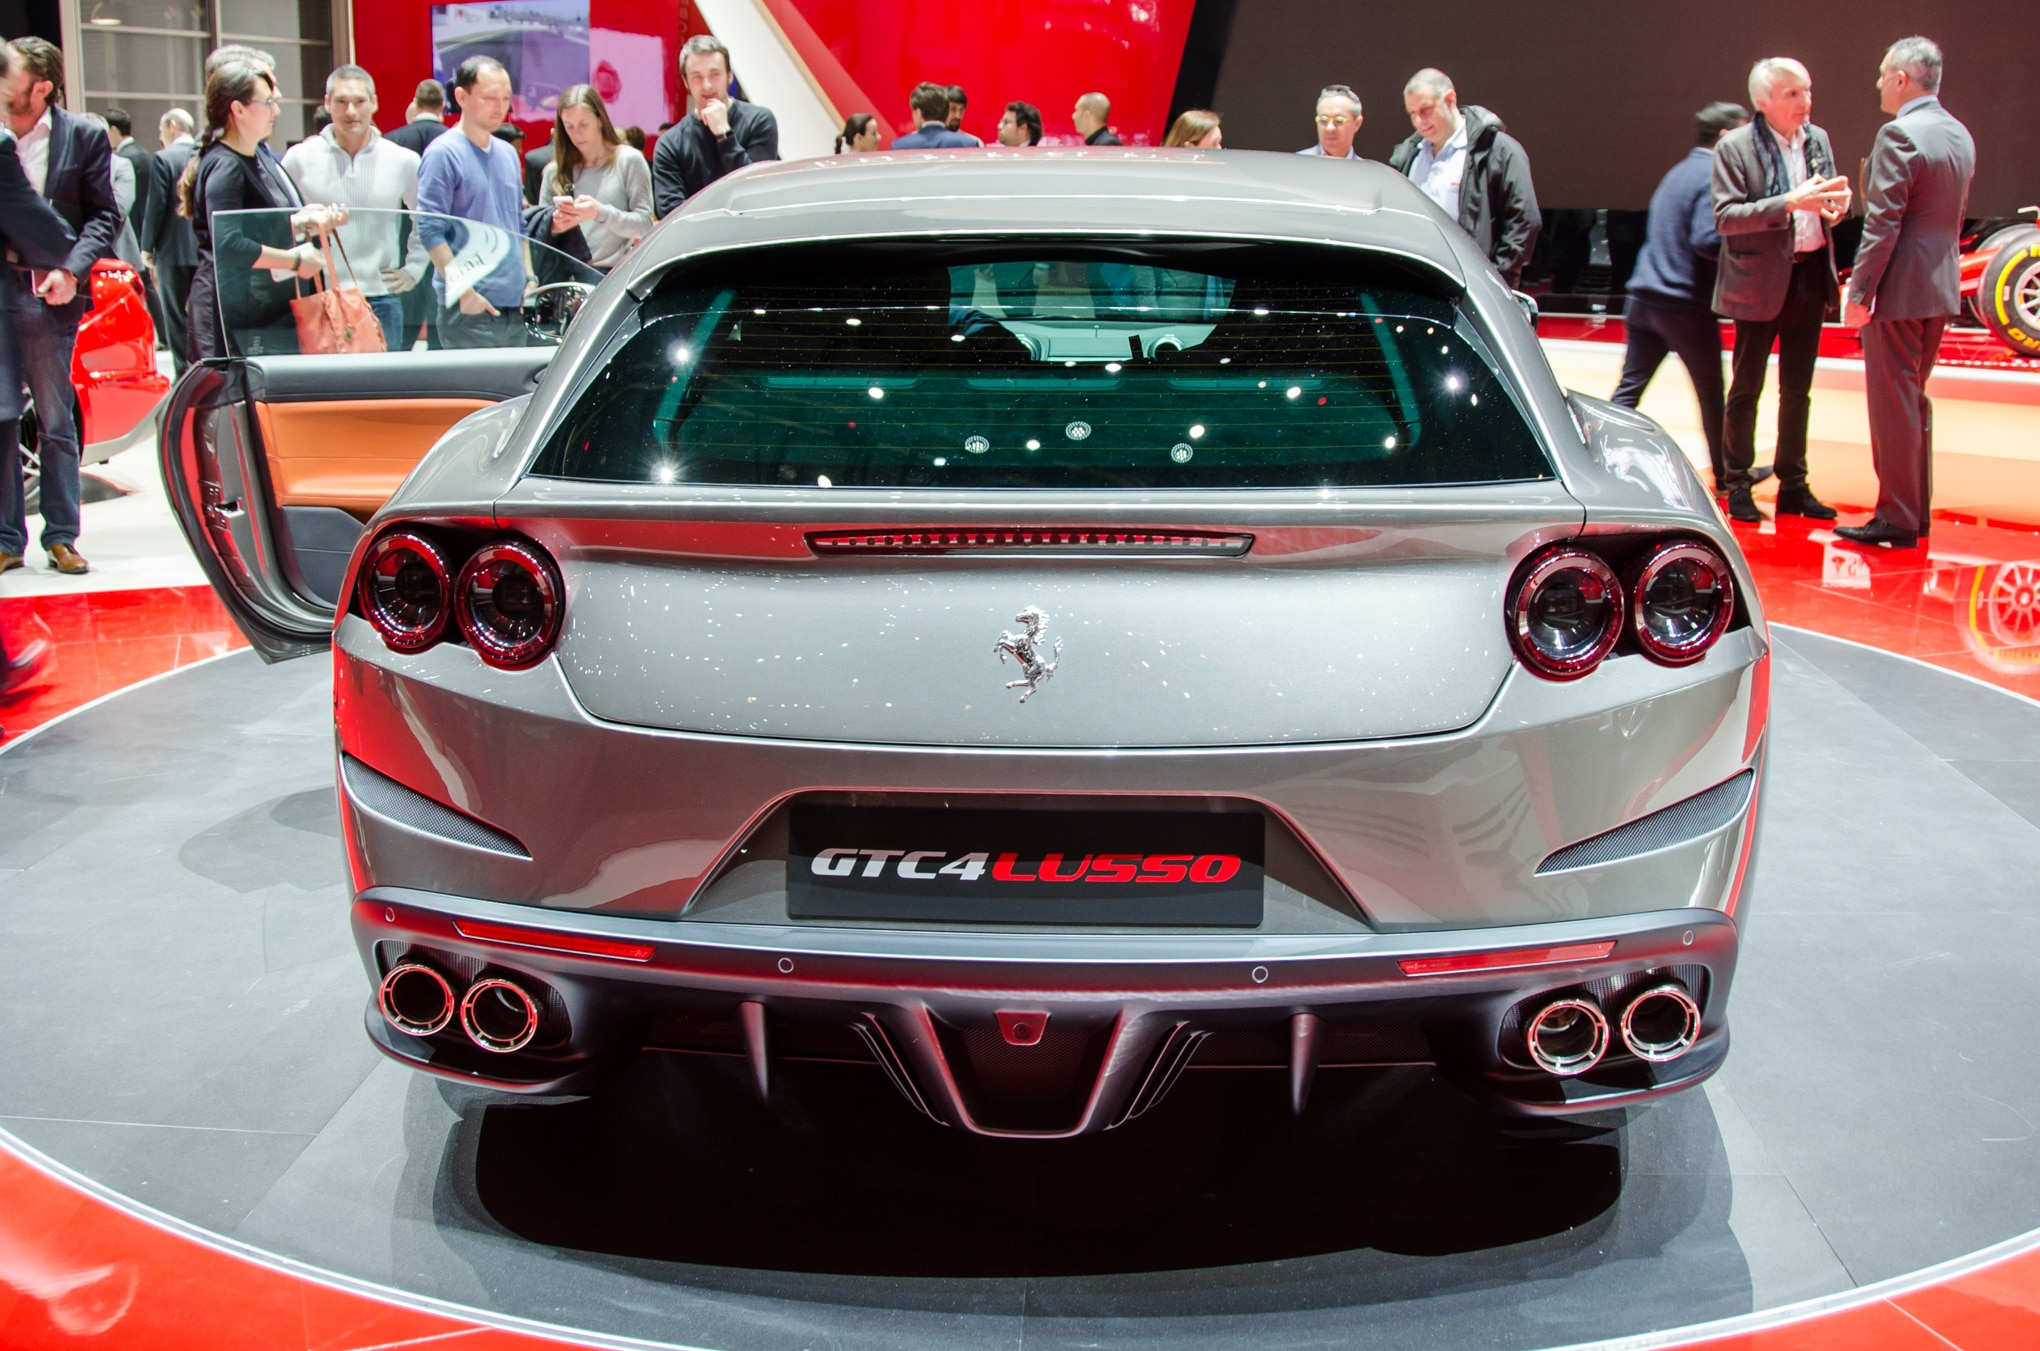 Ferrari Gtc4 Lusso Revealed With New Name More Power